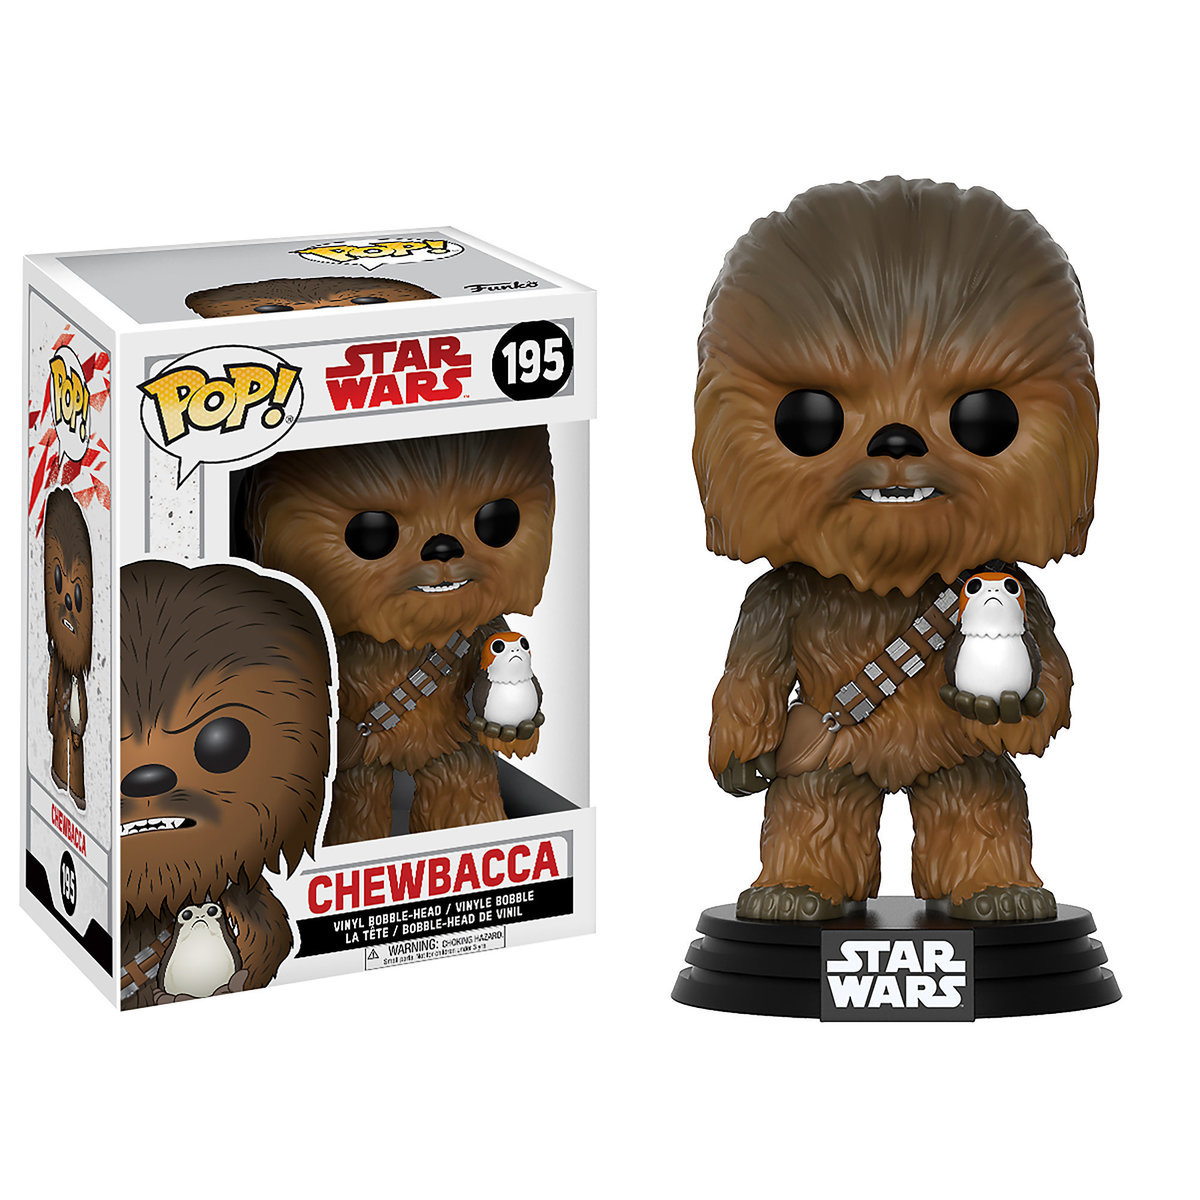 Chewbacca Pop! Vinyl Bobble-Head Figure by Funko - Star Wars: The Last Jedi